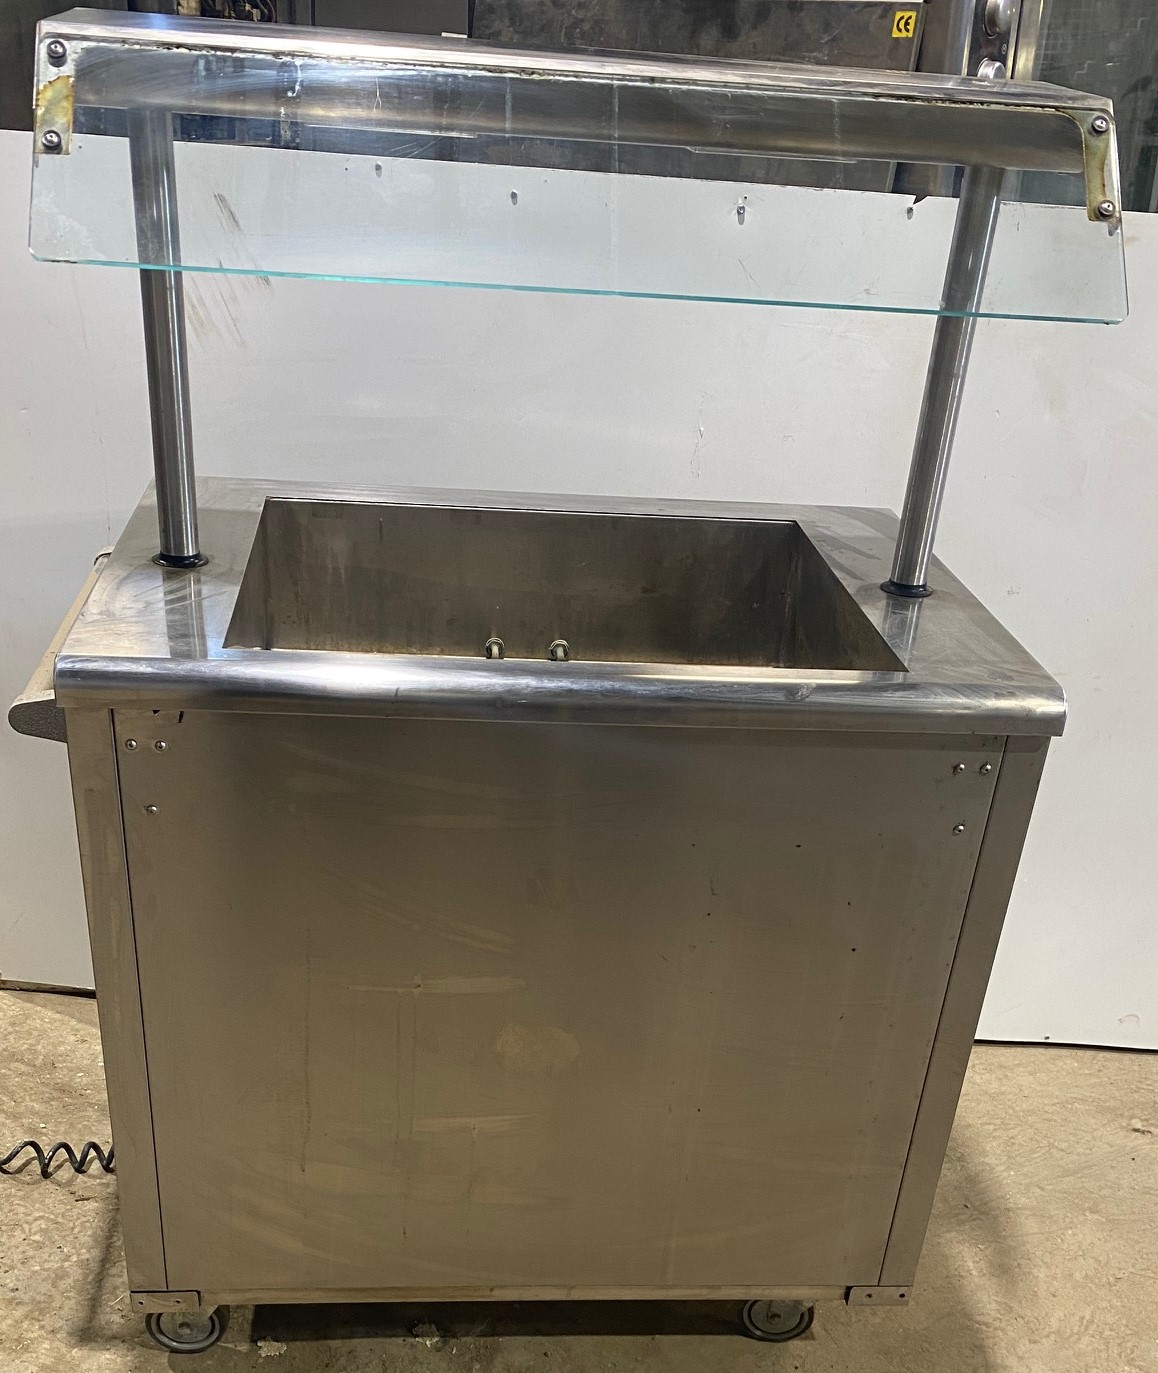 Heated 2 Gastronorm Tray servery on wheels